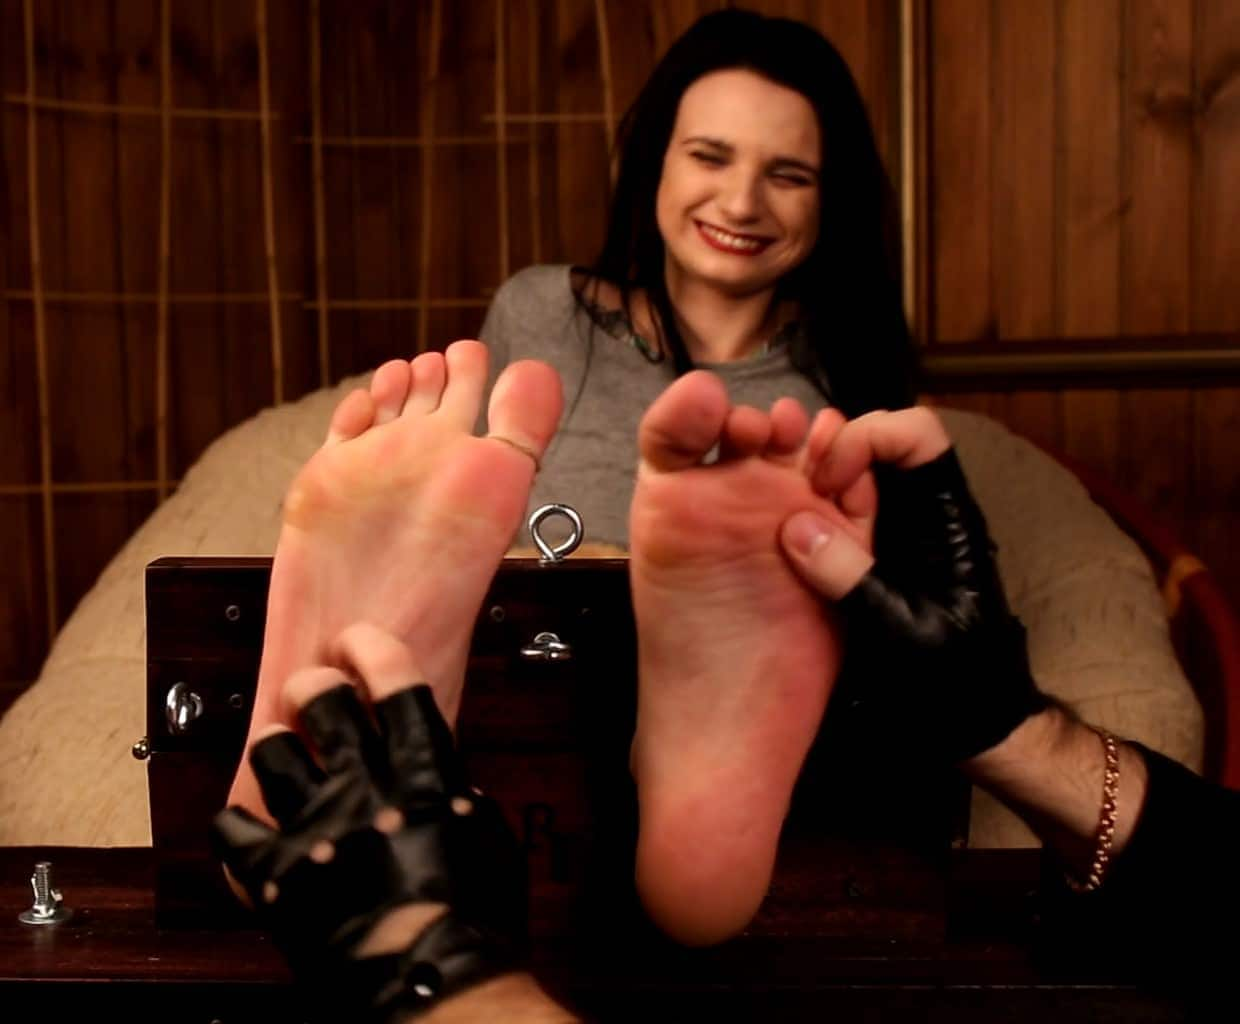 Excellent Tickling for Tattooed Girl